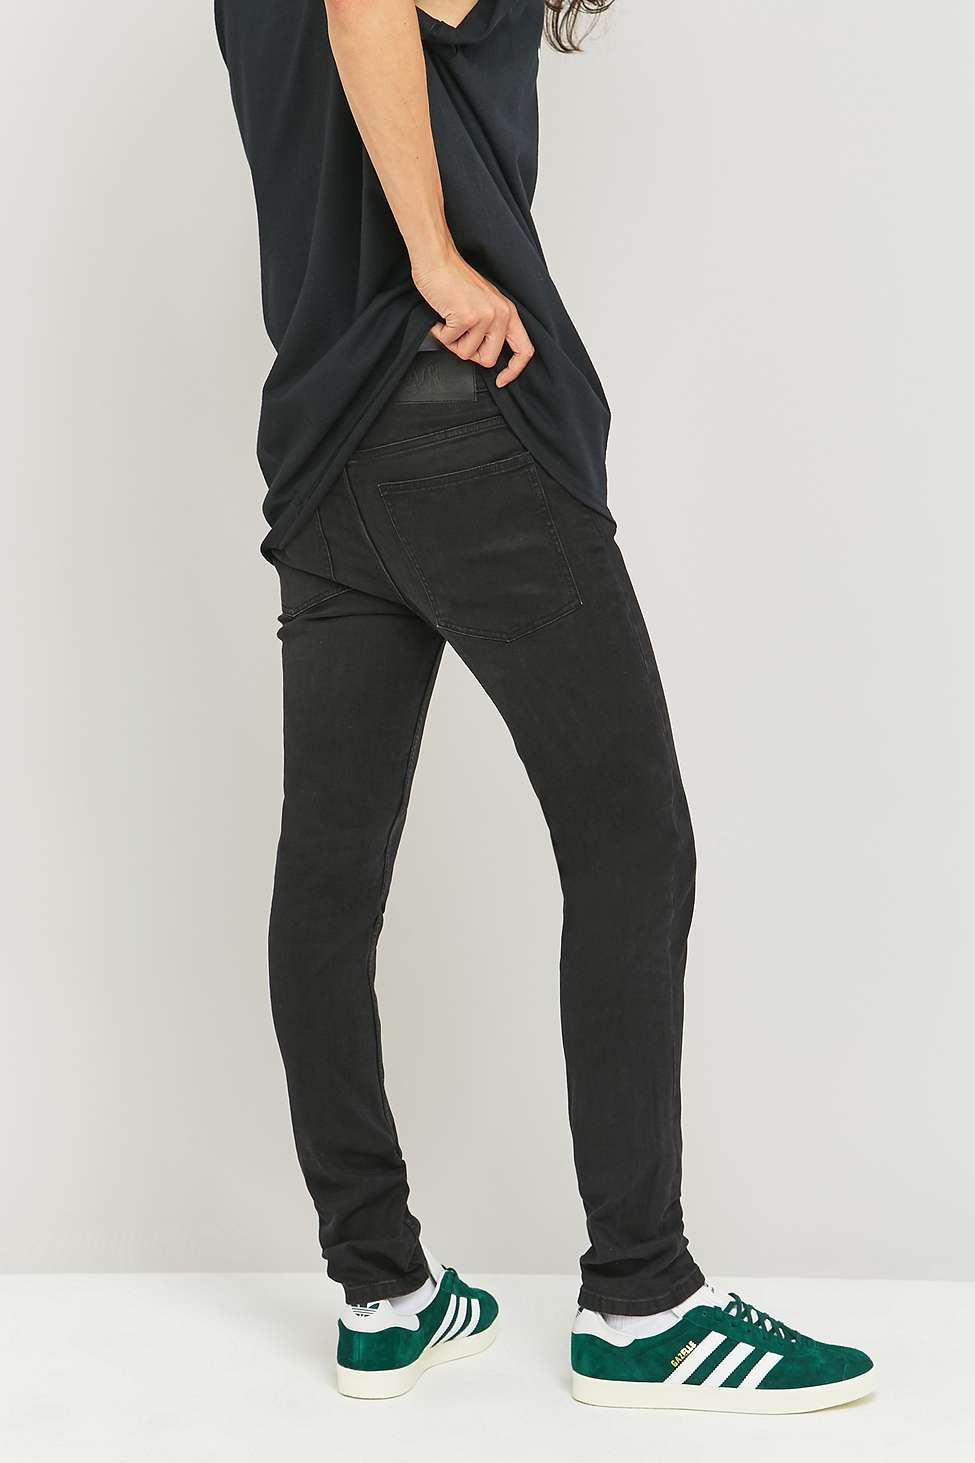 Cheap Monday Tight Black Haze Slim Fit Jeans | Urban Outfitters